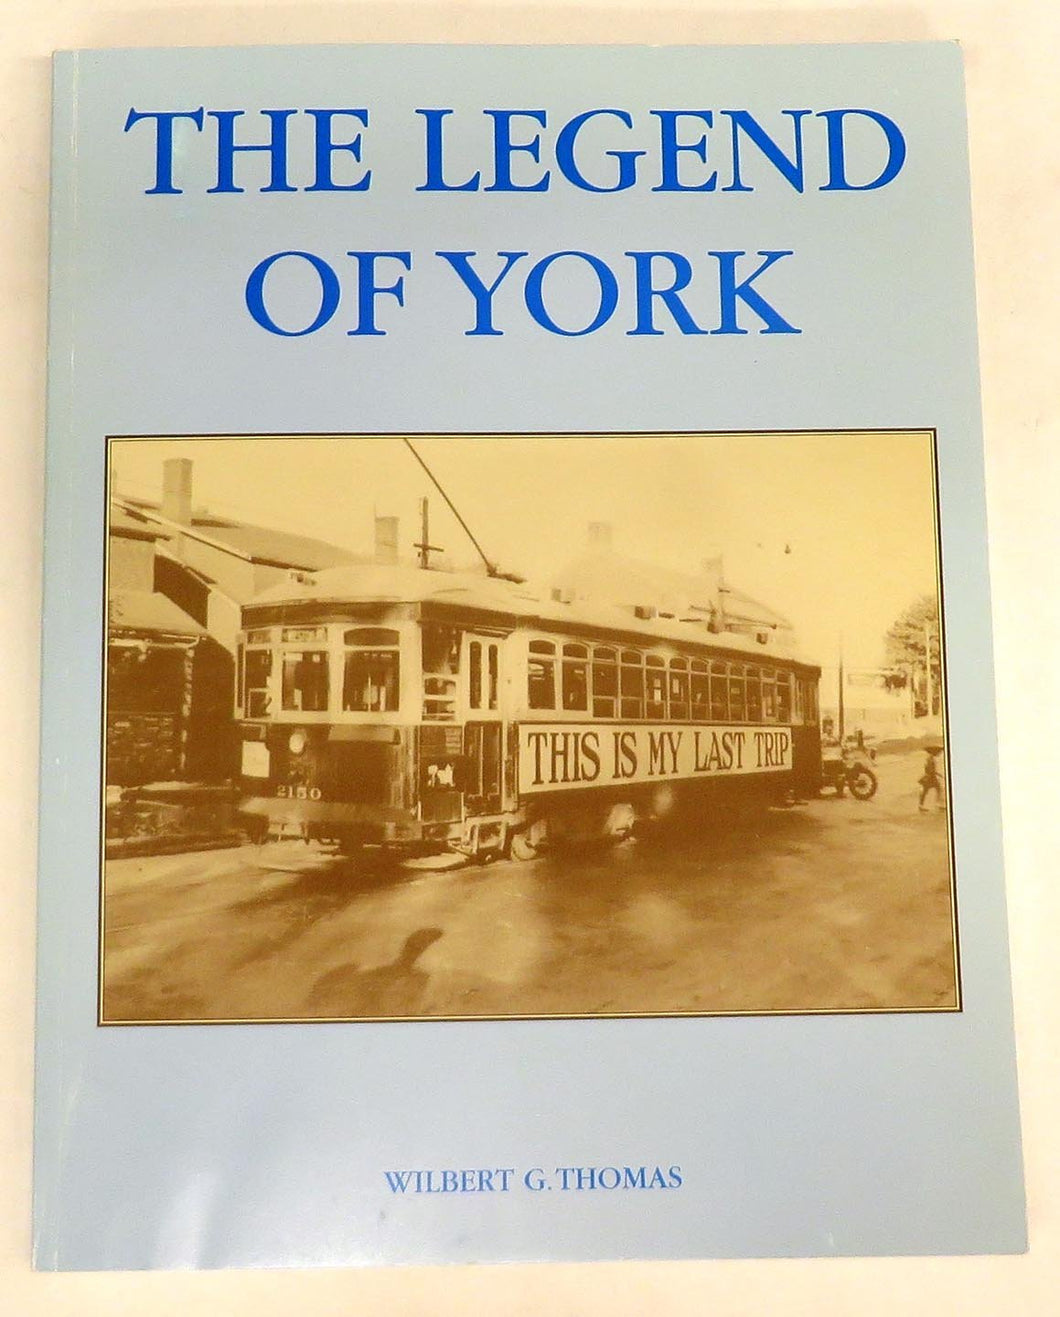 The Legend of York: A Survey of the Later Developments, (1920-1950), in York Township